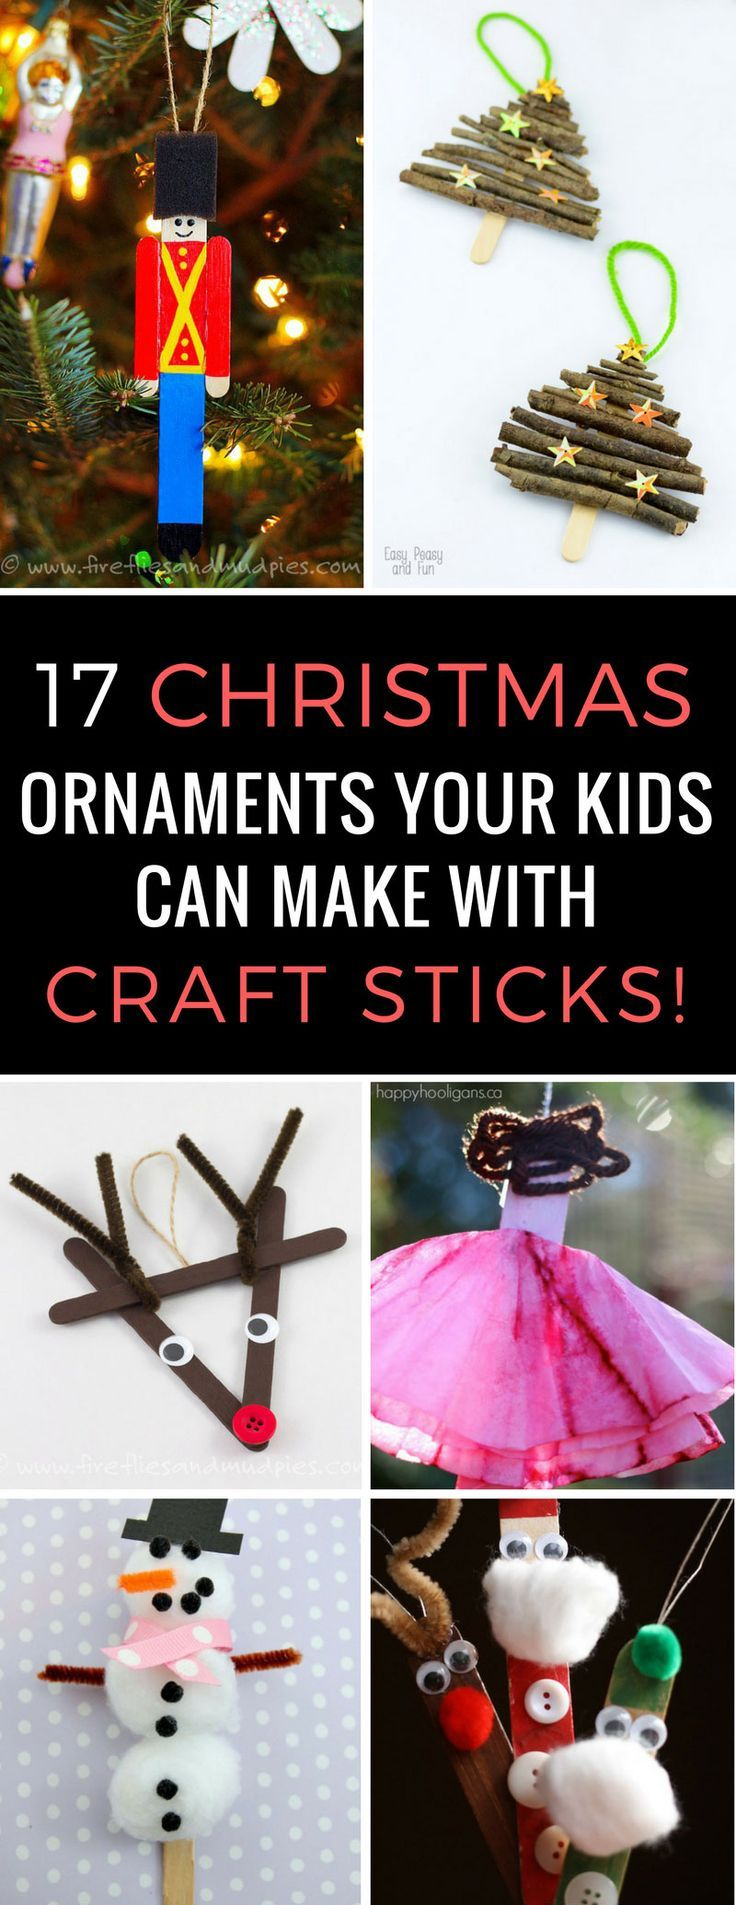 Popsicle Christmas ornaments have to be the easiest craft projects for kids to make in the Holidays and these are all so adorable I need to go to the Dollar Tree to get more craft sticks!